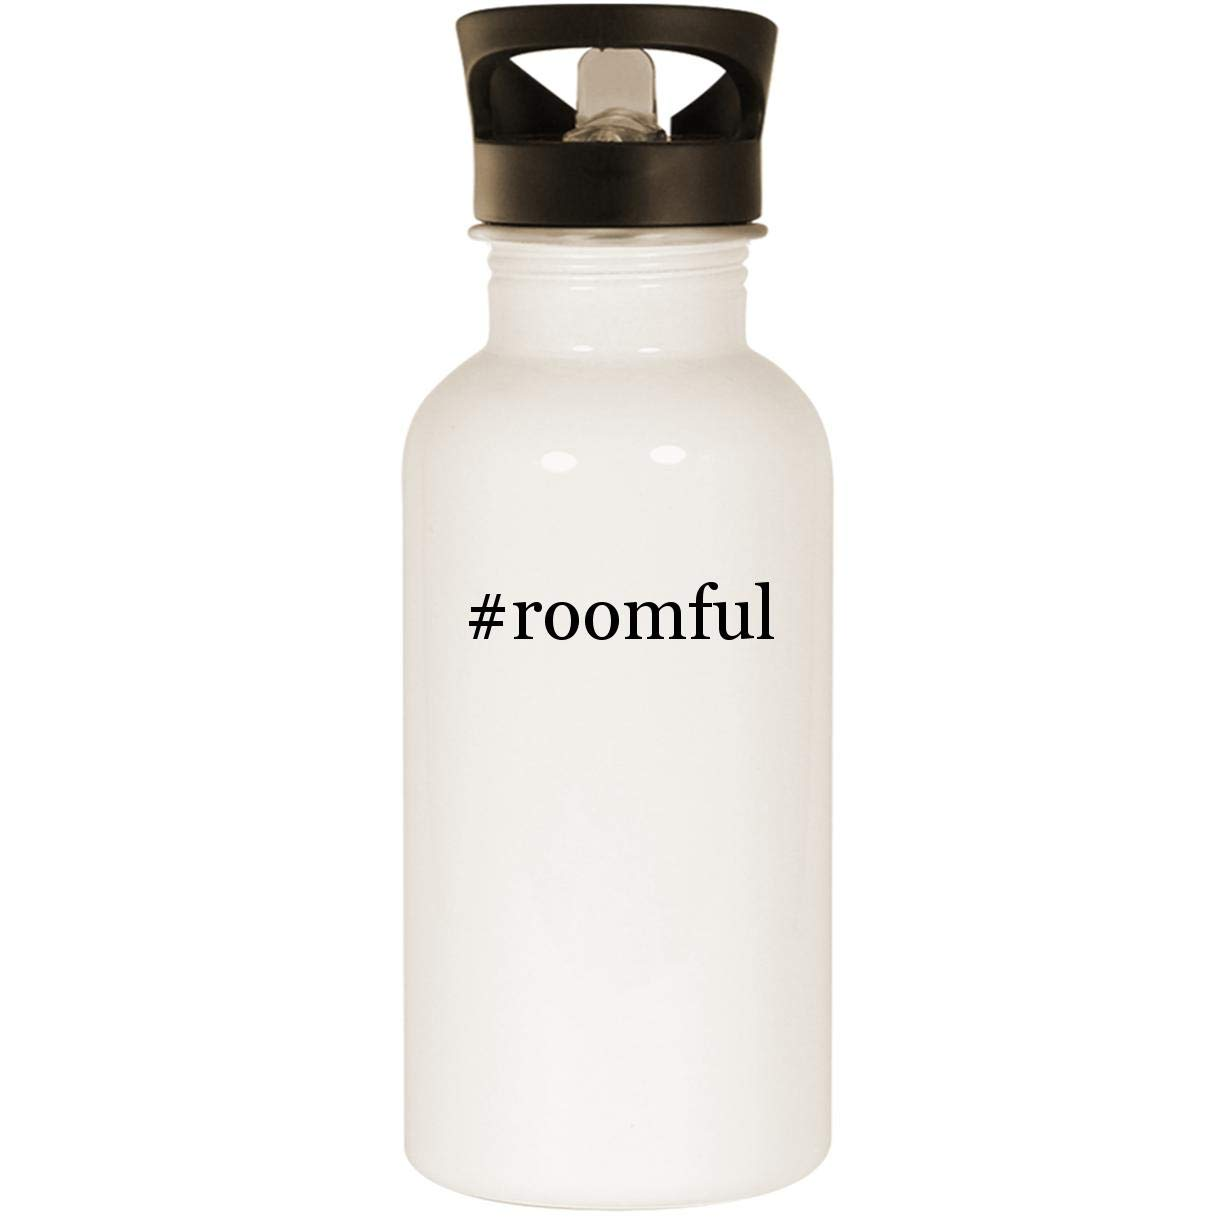 #roomful - Stainless Steel 20oz Road Ready Water Bottle, White by Molandra Products (Image #1)